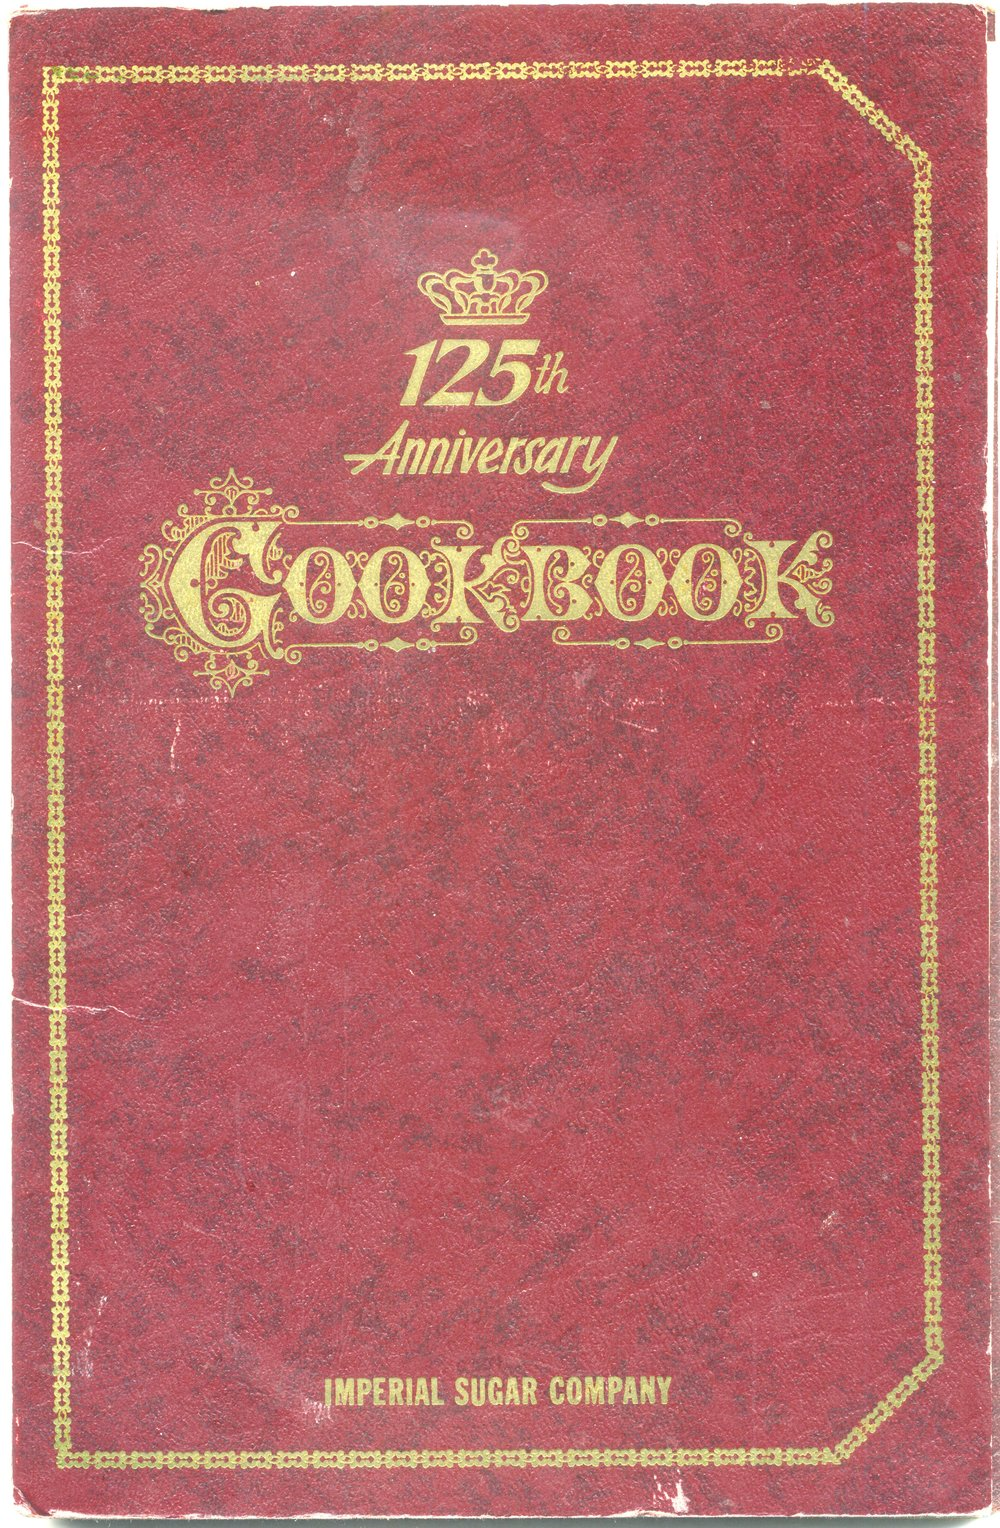 1968 ... 125th Anniversary Cookbook from Imperial Sugar Company ... given to me by my paternal grandmother